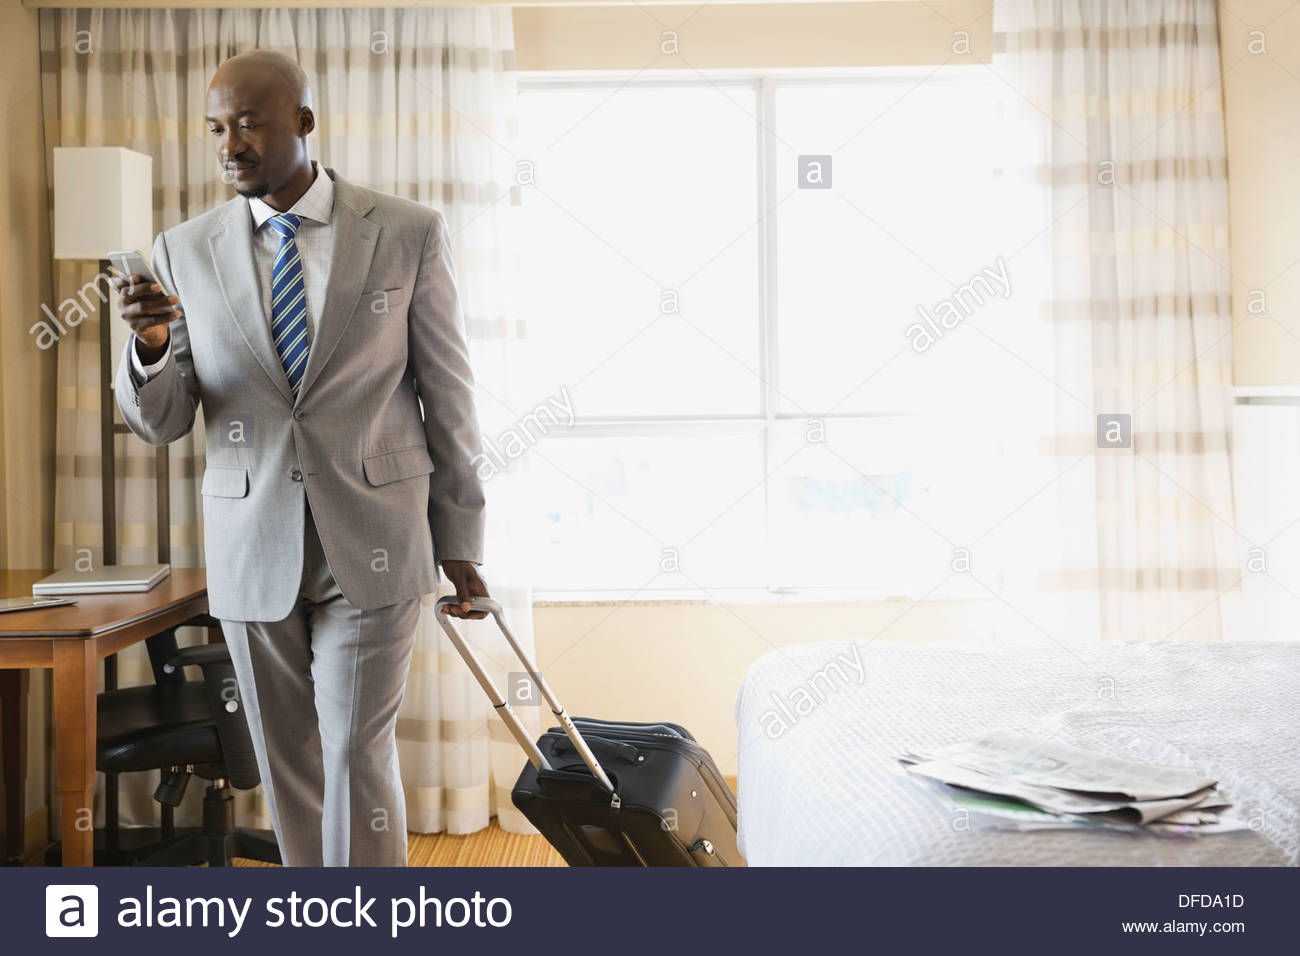 Businessman with luggage checking smart phone - Stock Image